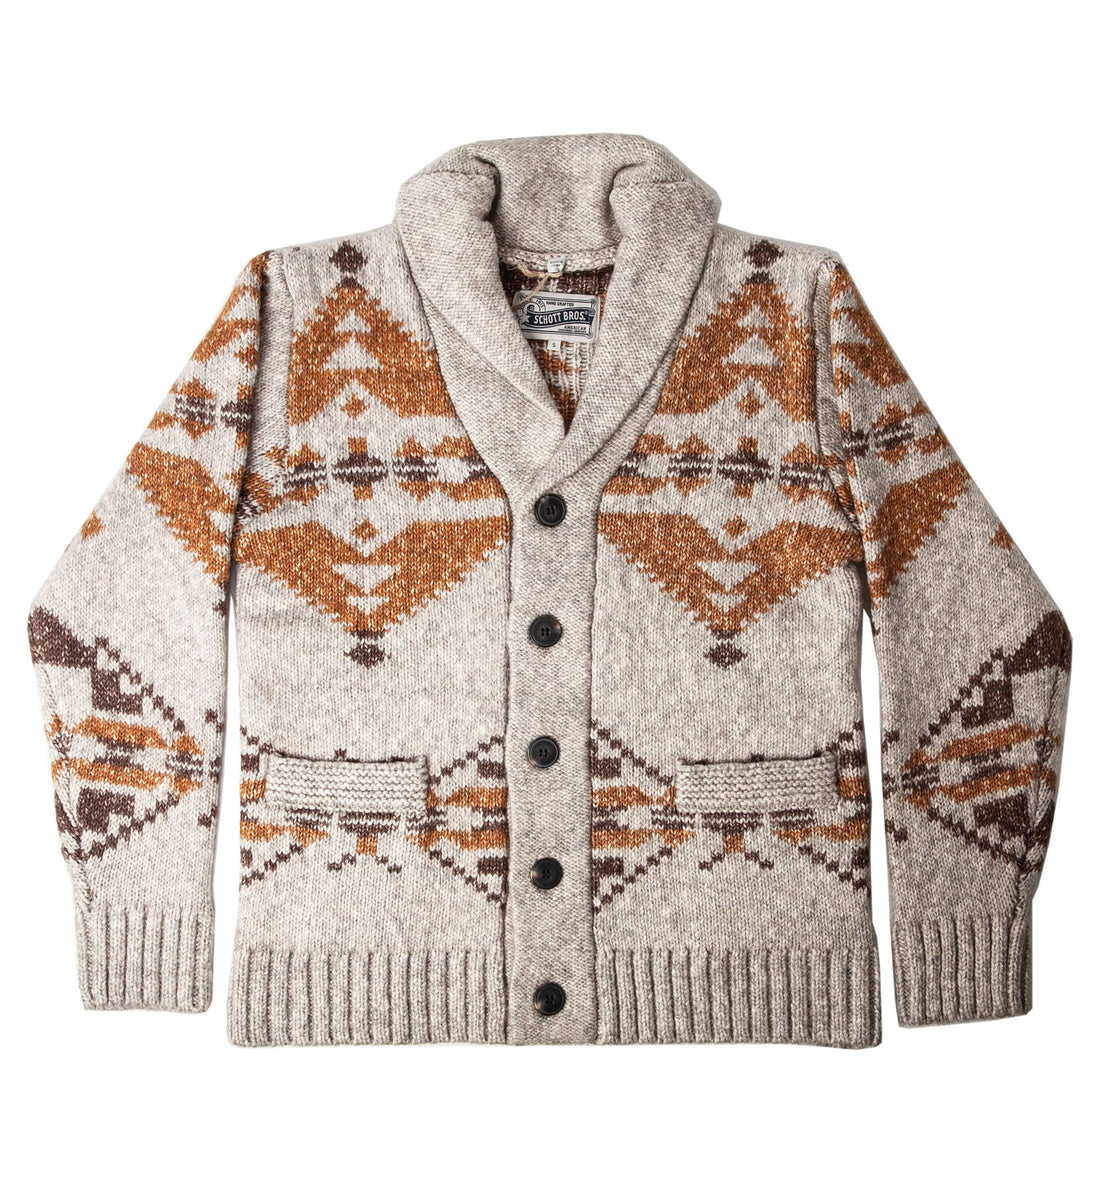 Schott NYC Corp. Men's Motif Cardigan - Tops - Iron and Resin